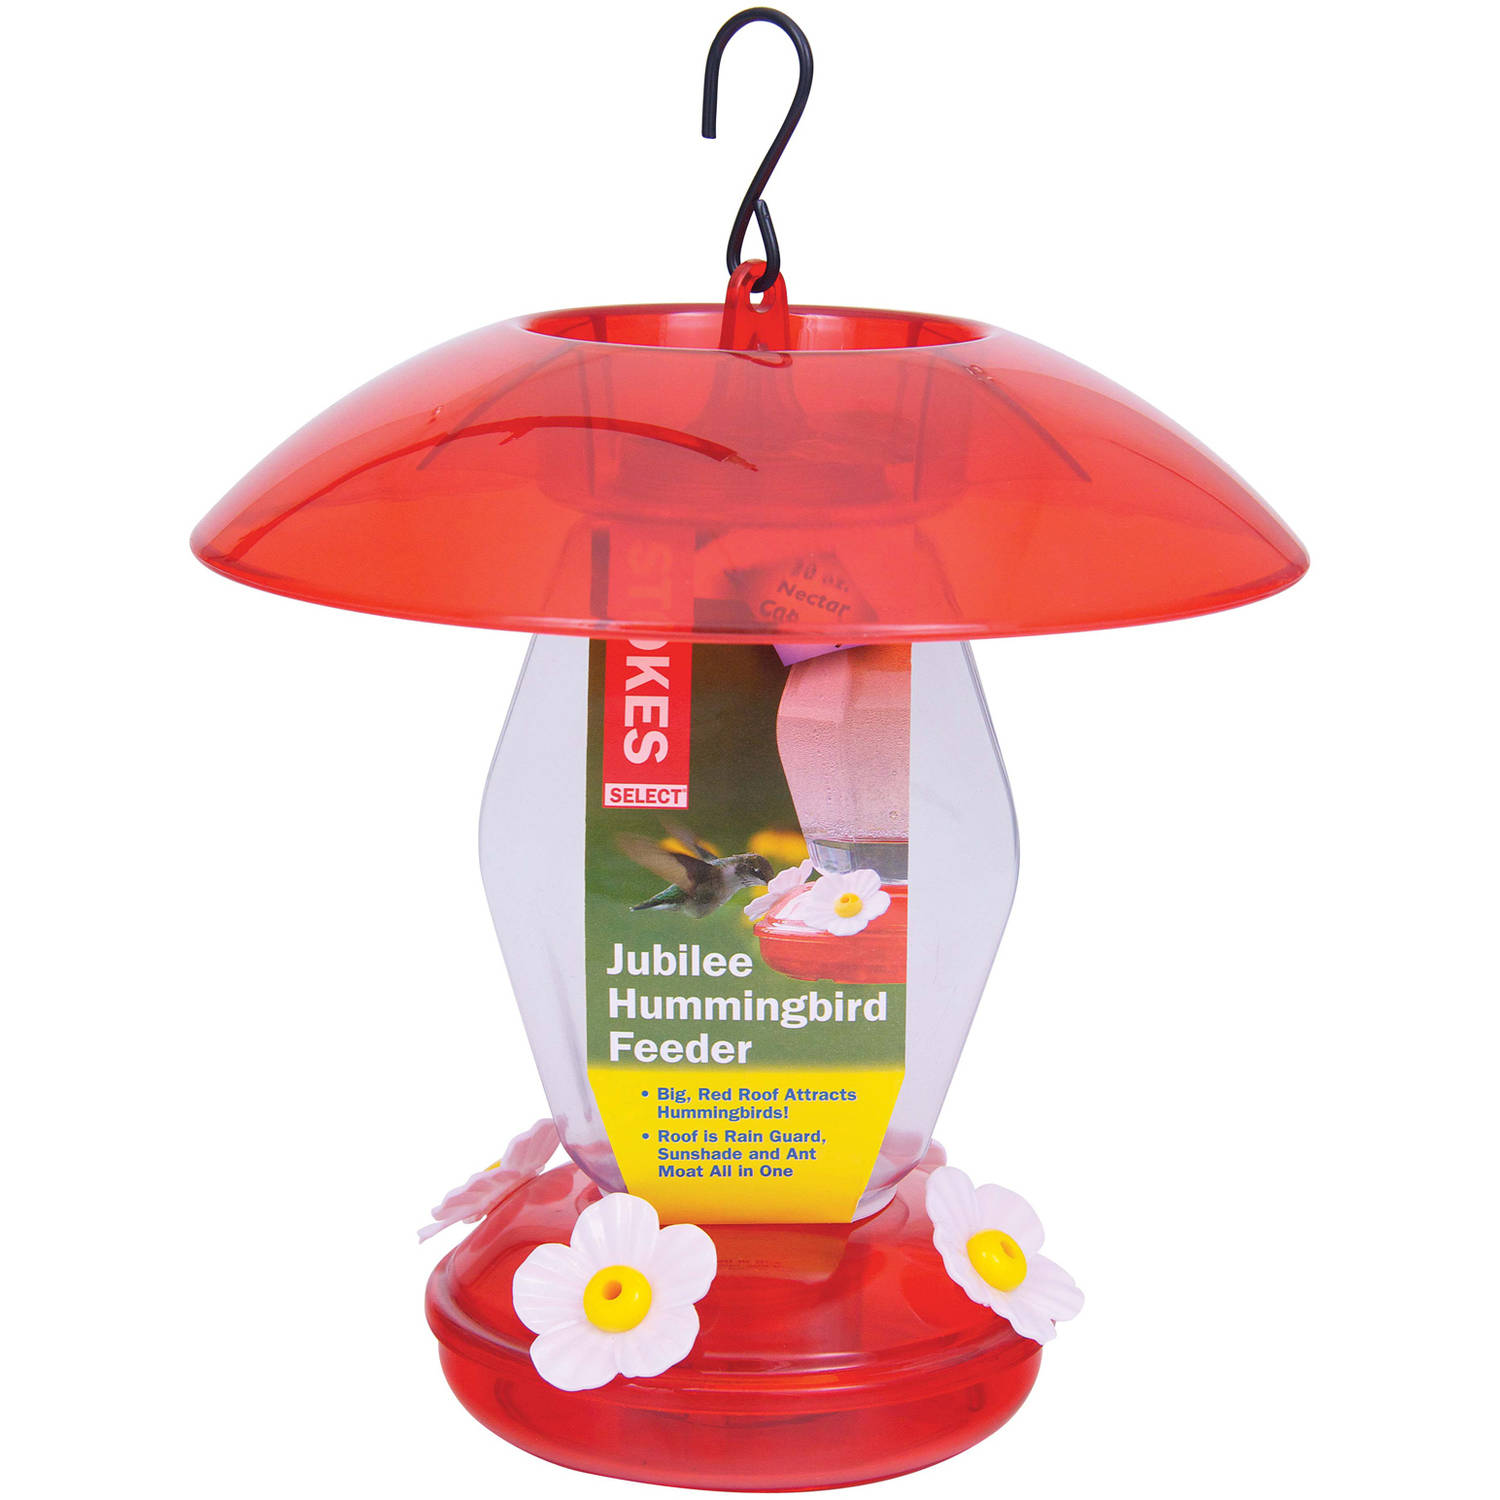 Hiatt Manufacturing HIATT38139 Jubilee Hummingbird Feeder Red 20 oz